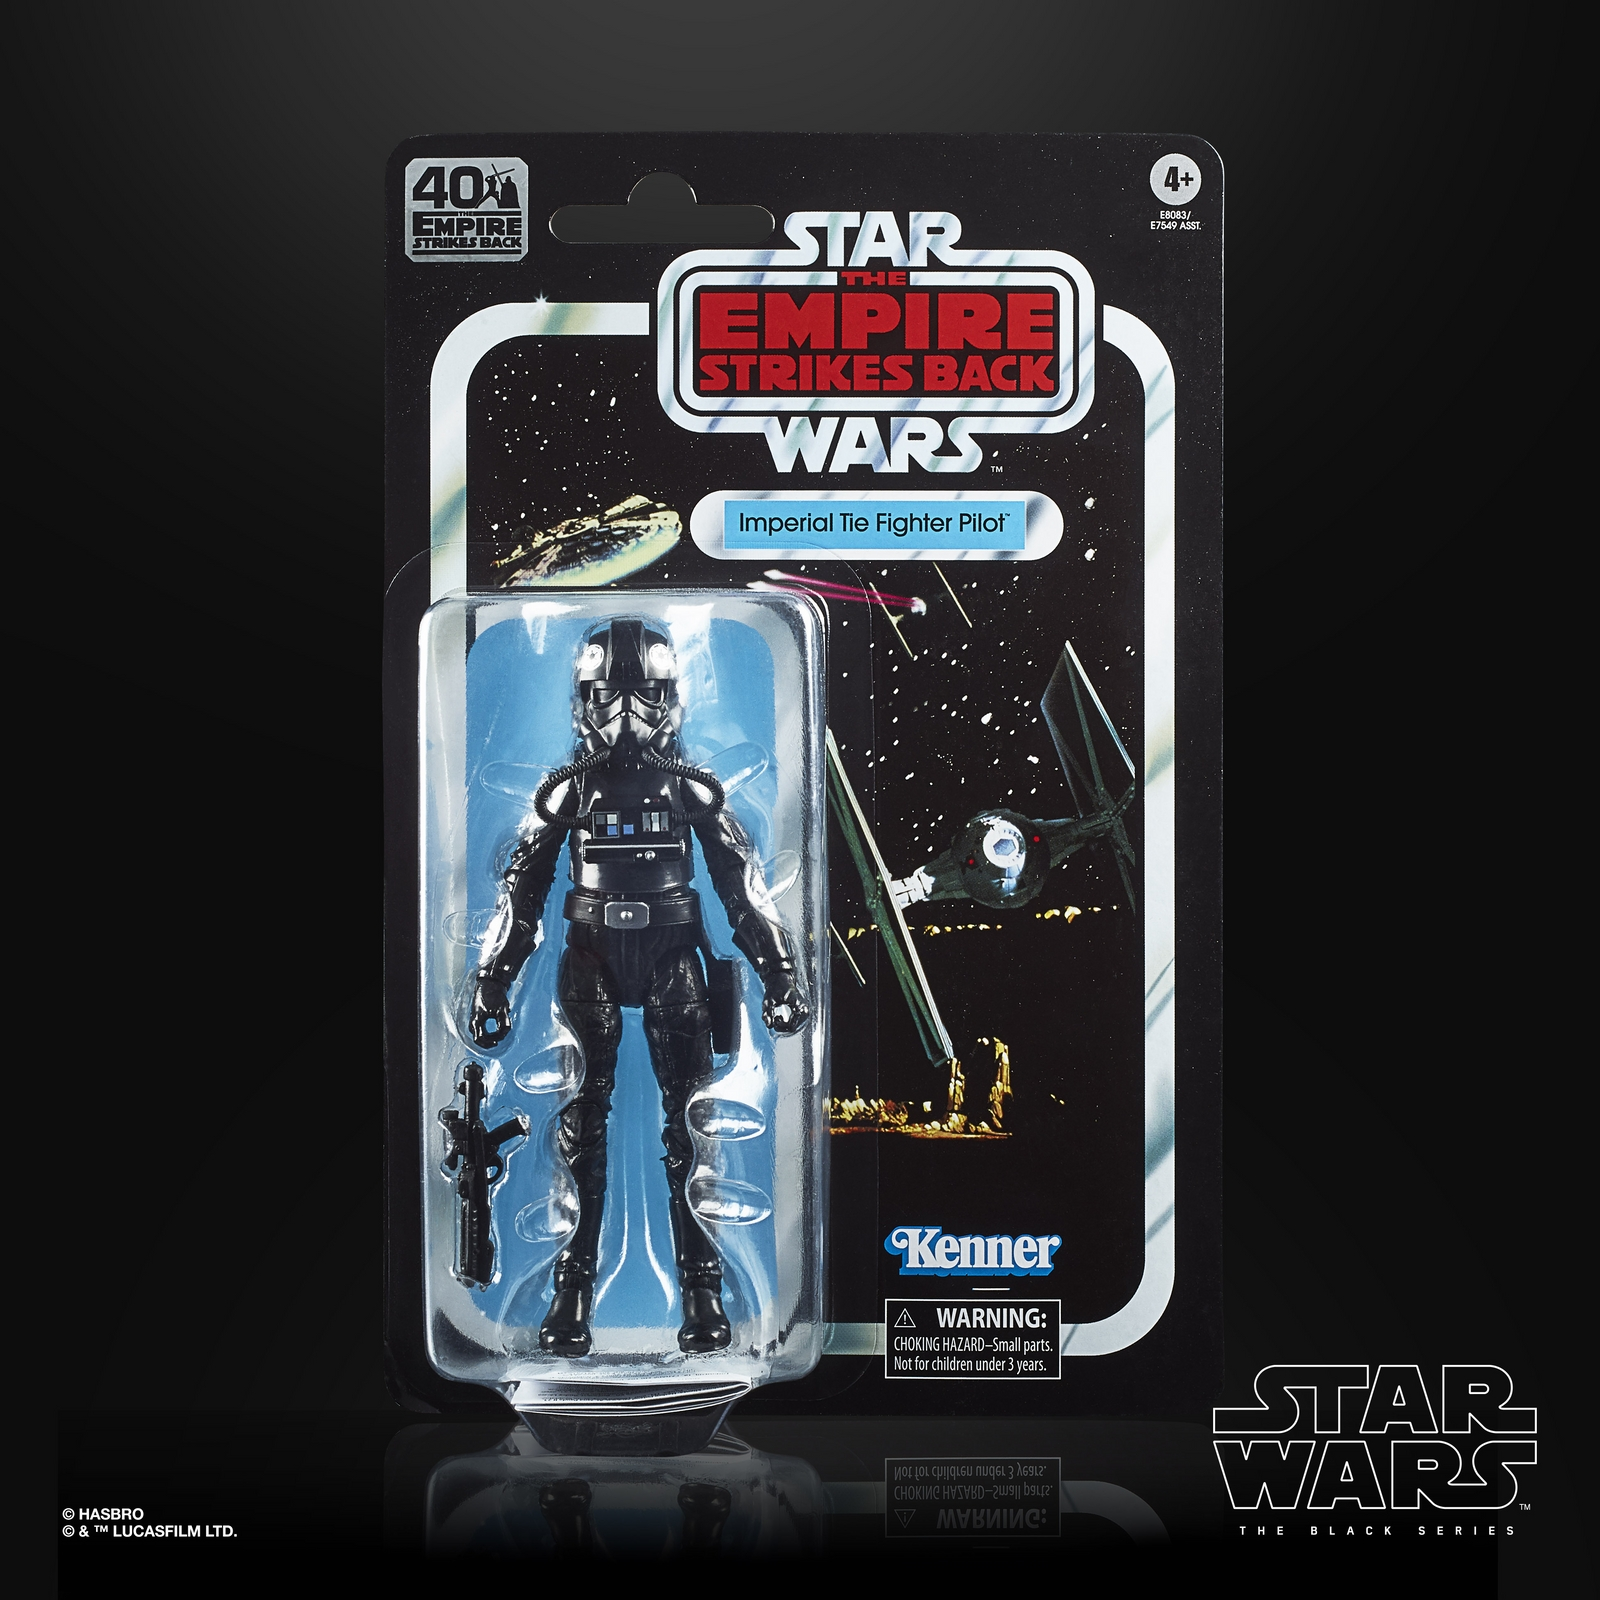 star-wars-the-black-series-40th-anniversary-6-inch-imperial-tie-fighter-pilot---in-pck.jpg